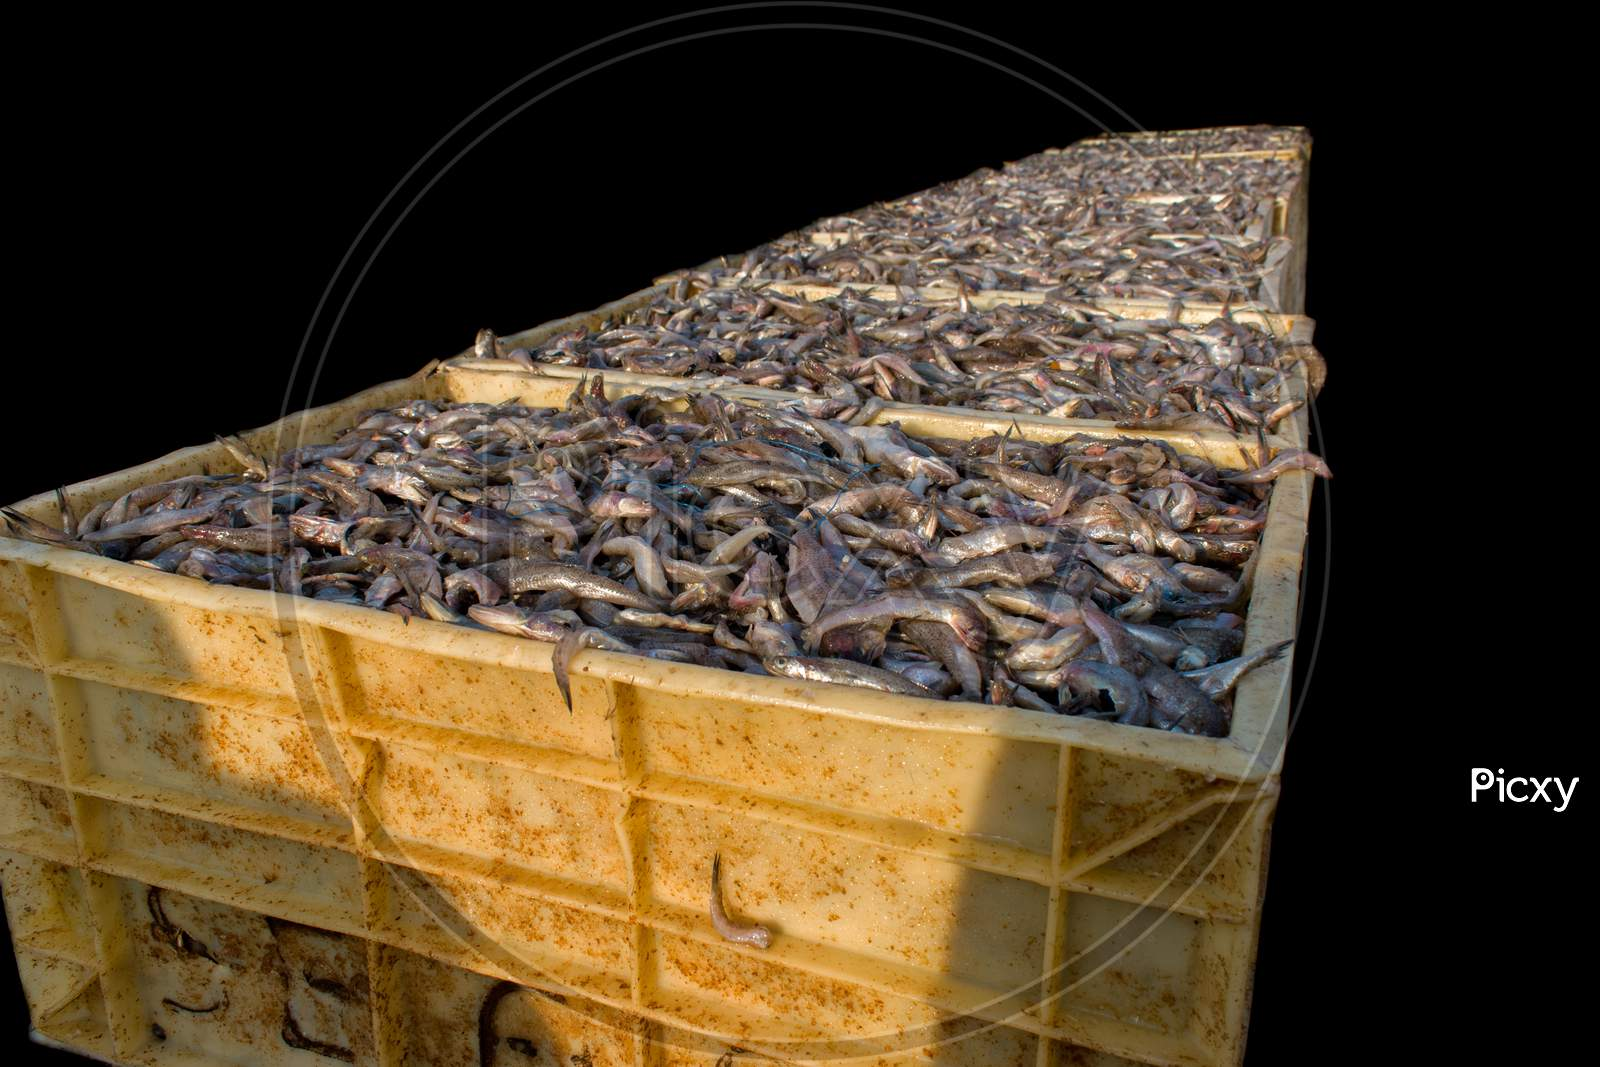 Collection Of Large Quantity Of Fish In The Fish Containers Ready To Export Isolated On Black.